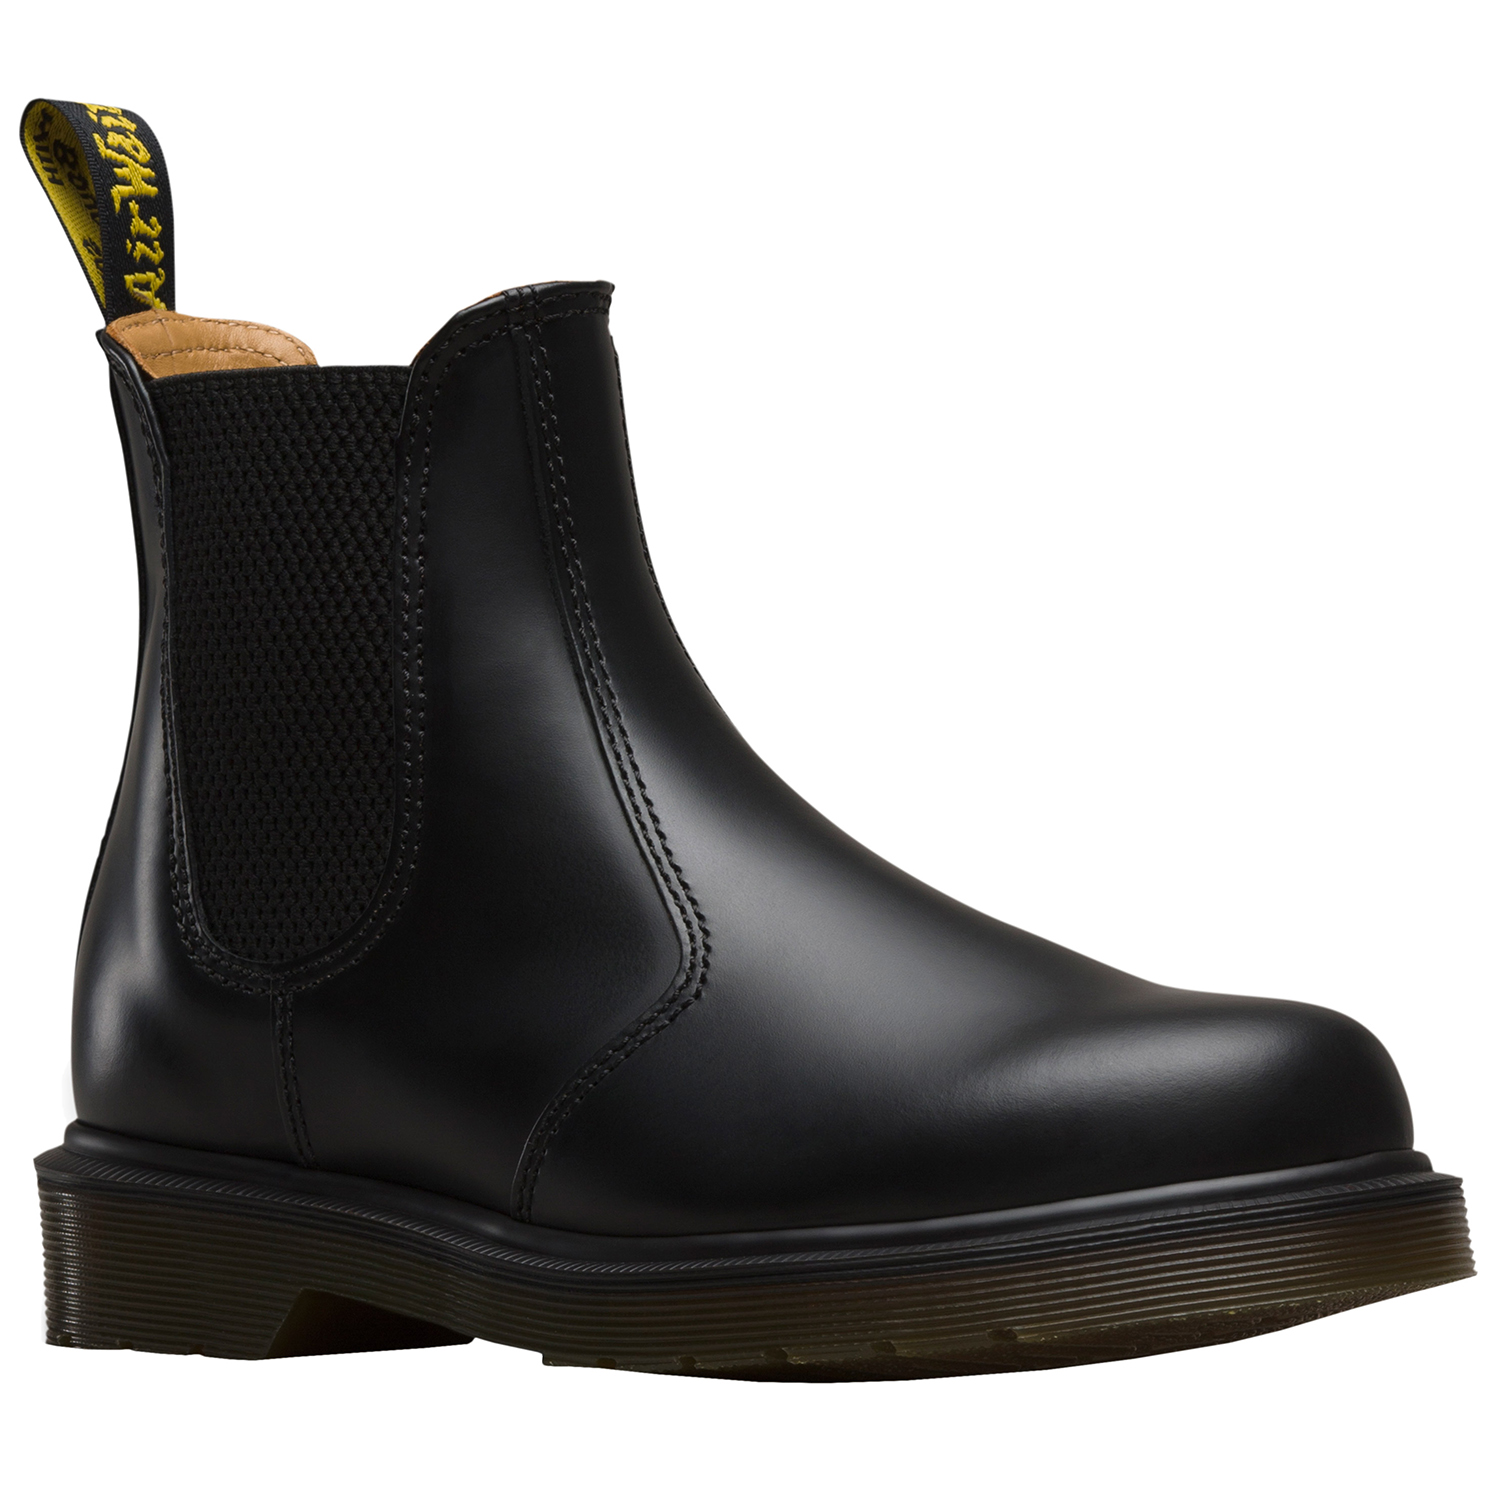 Dr Martens 2976 Boots available from